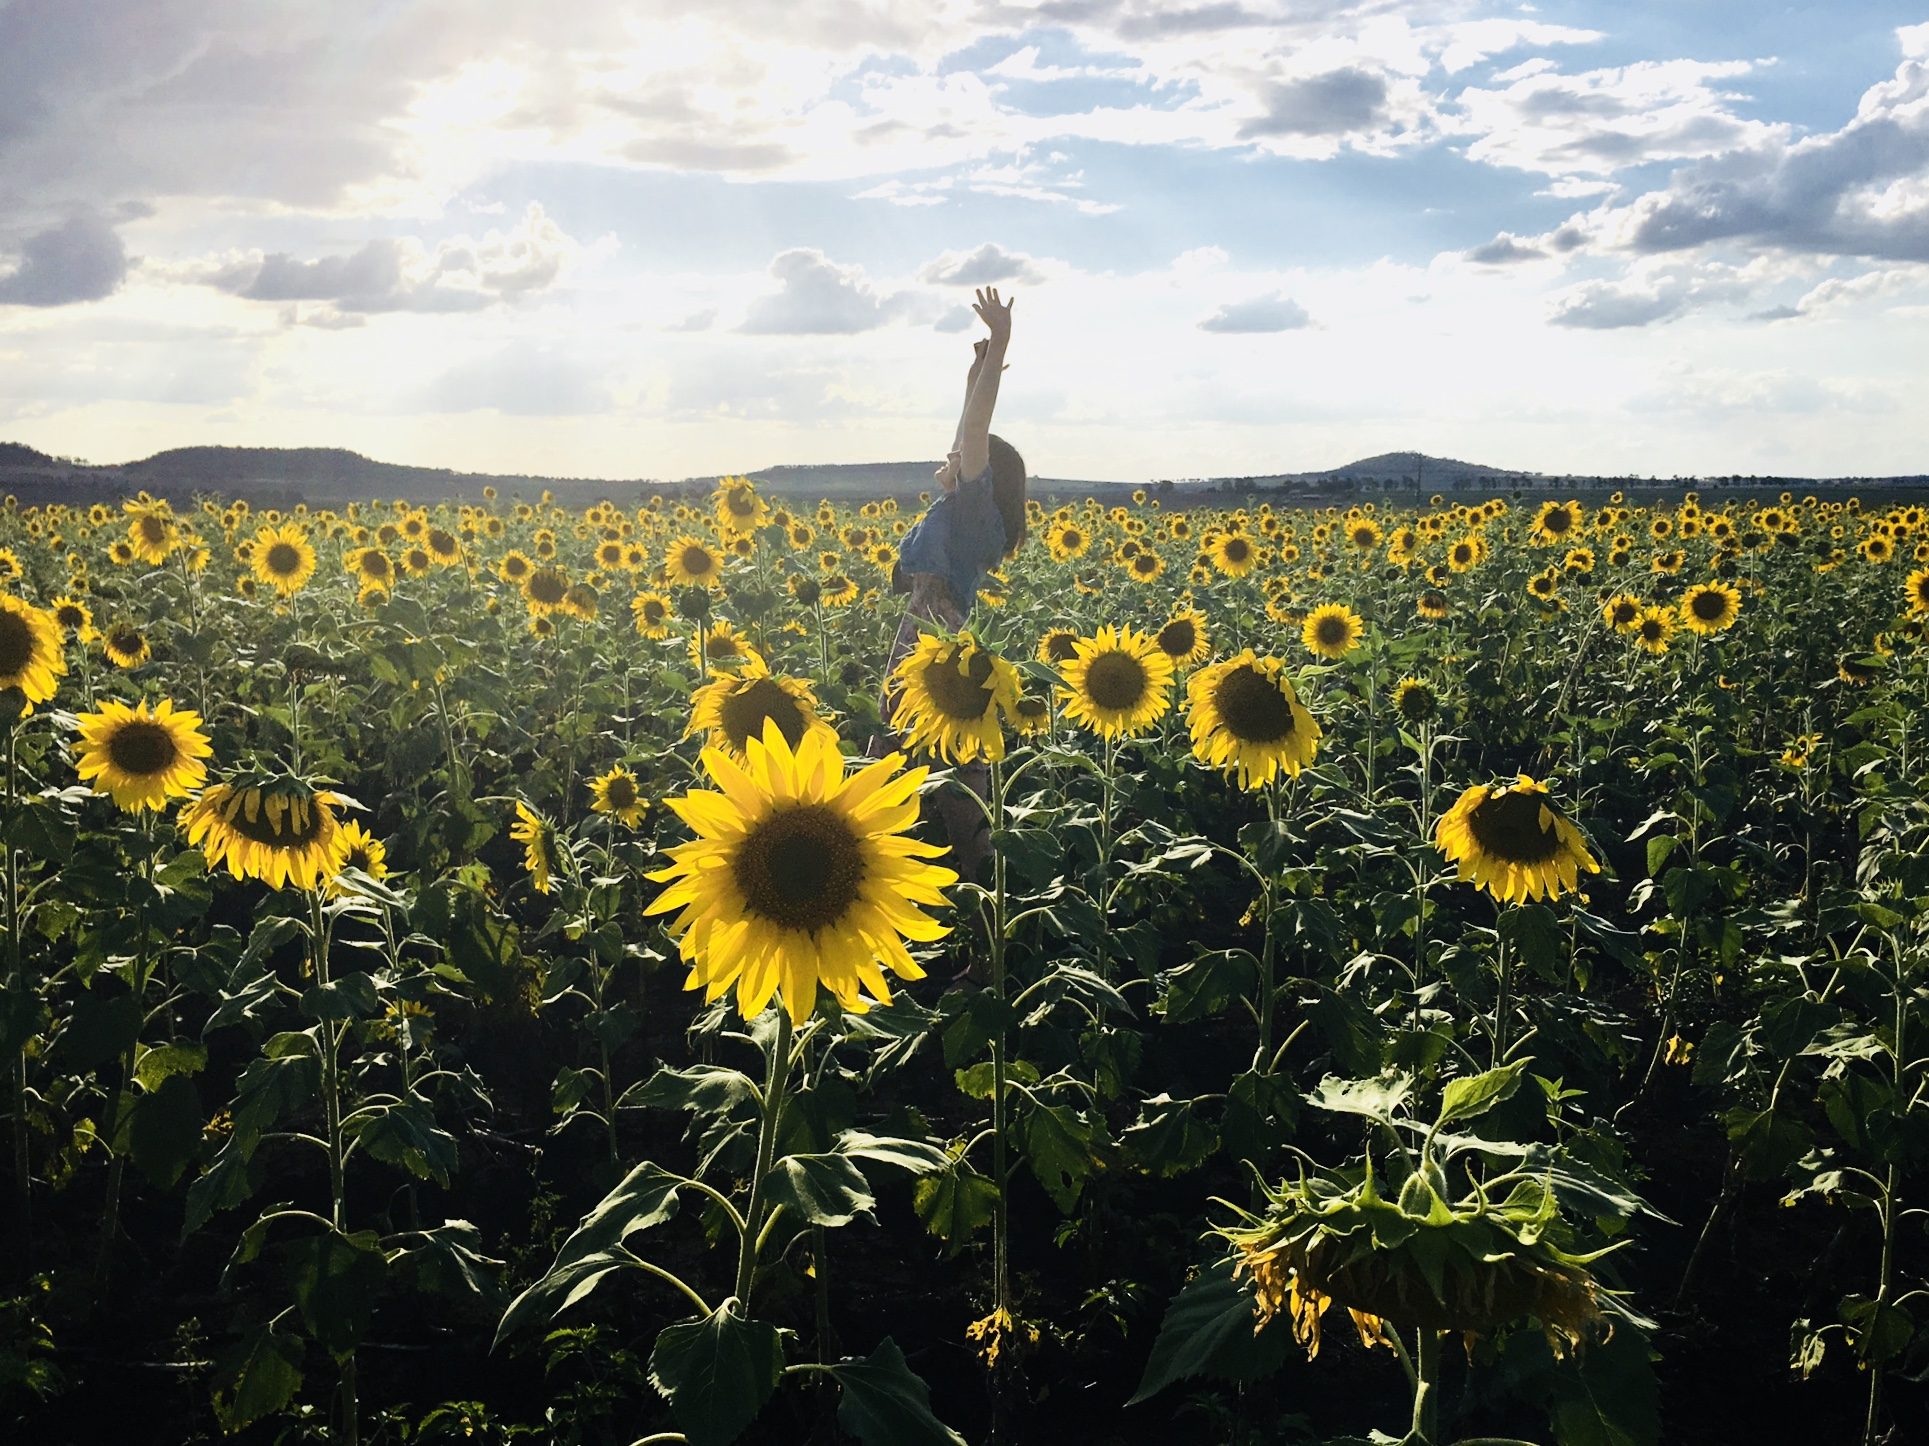 Sunflower Iphone Wallpaper Person In Blue Shirt On Sunflower Field Photo Shot 183 Free